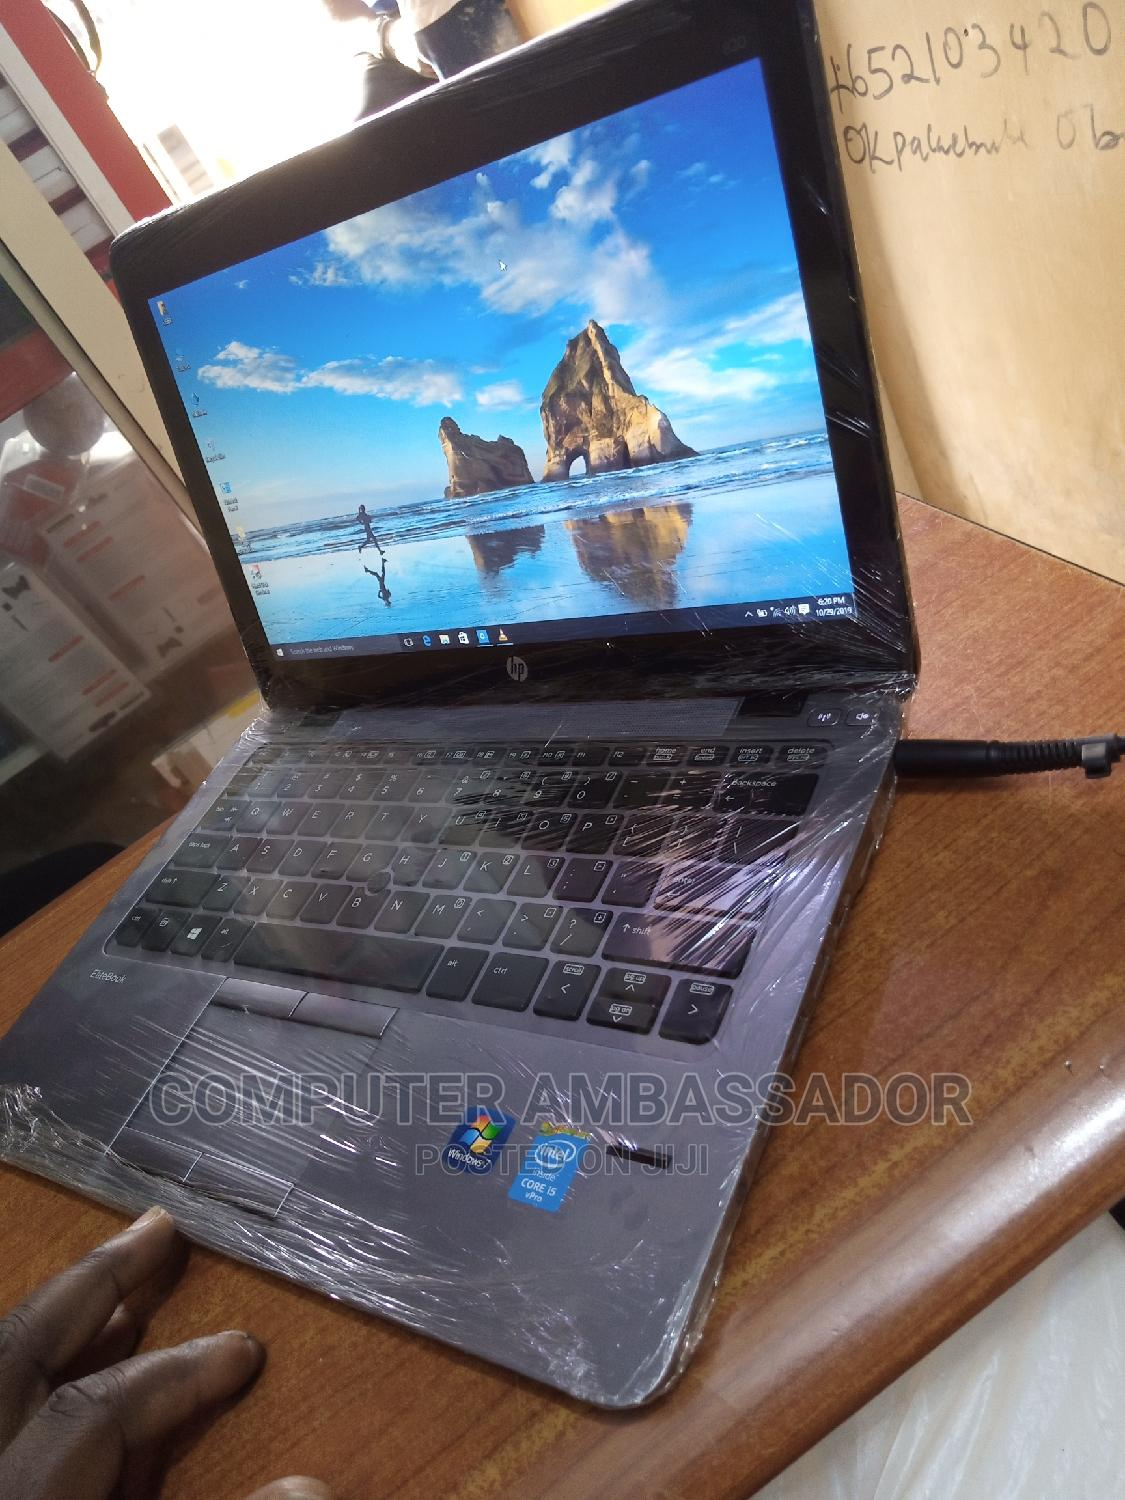 Laptop HP EliteBook 820 G2 4GB Intel Core I5 HDD 500GB   Laptops & Computers for sale in Wuse 2, Abuja (FCT) State, Nigeria